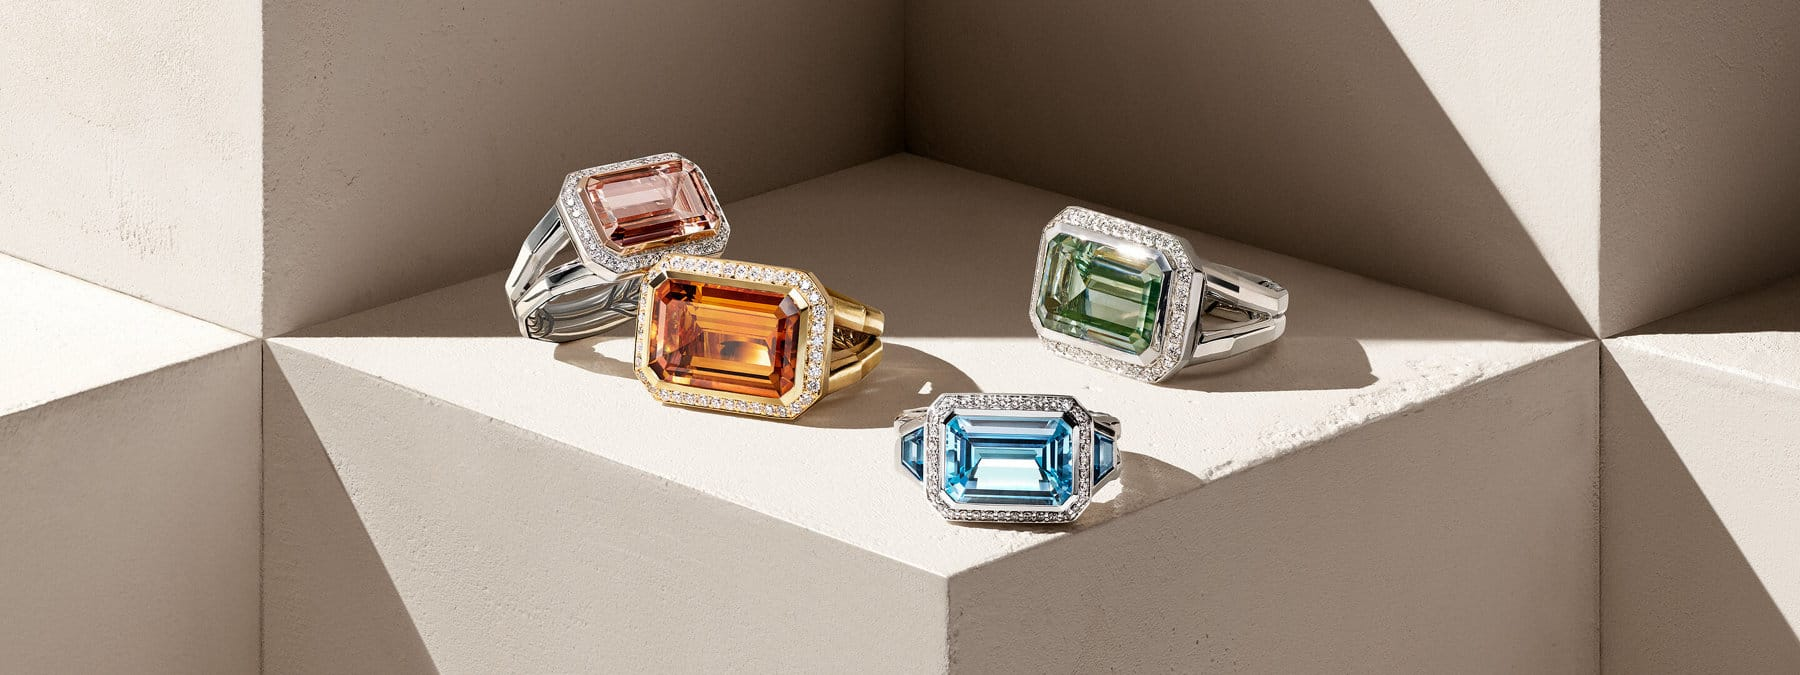 David Yurman Novella rings in 18K yellow gold with citrine and diamonds, and sterling silver with blue topaz, prasiolite and morganite.